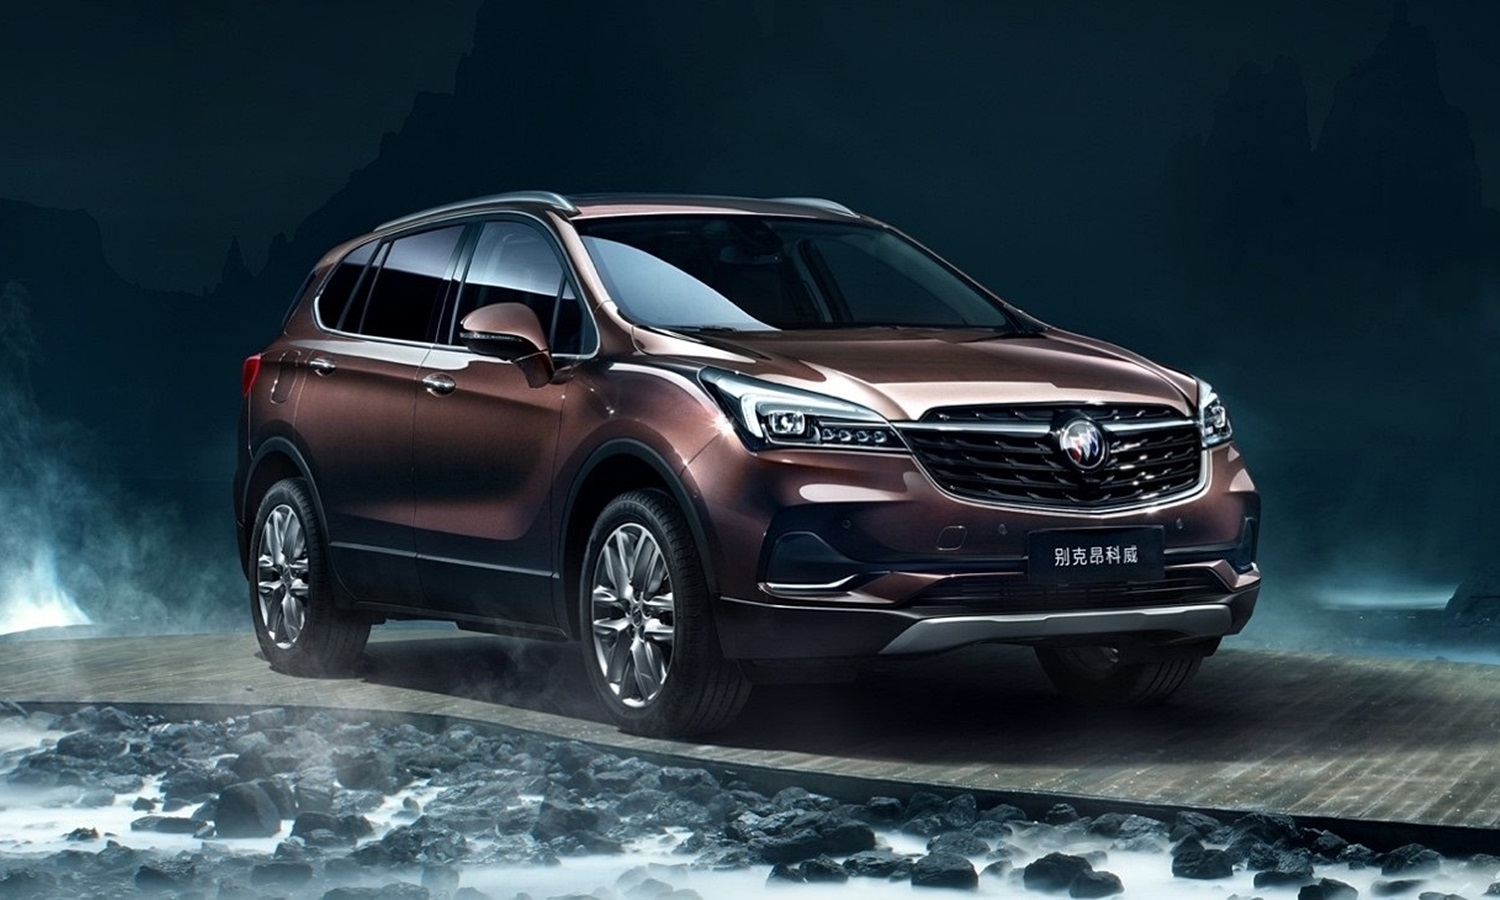 Buick Envision Set For Refresh This Year | Gm Authority 2022 Buick Envision Lease Deals, Interior Dimensions, Engine